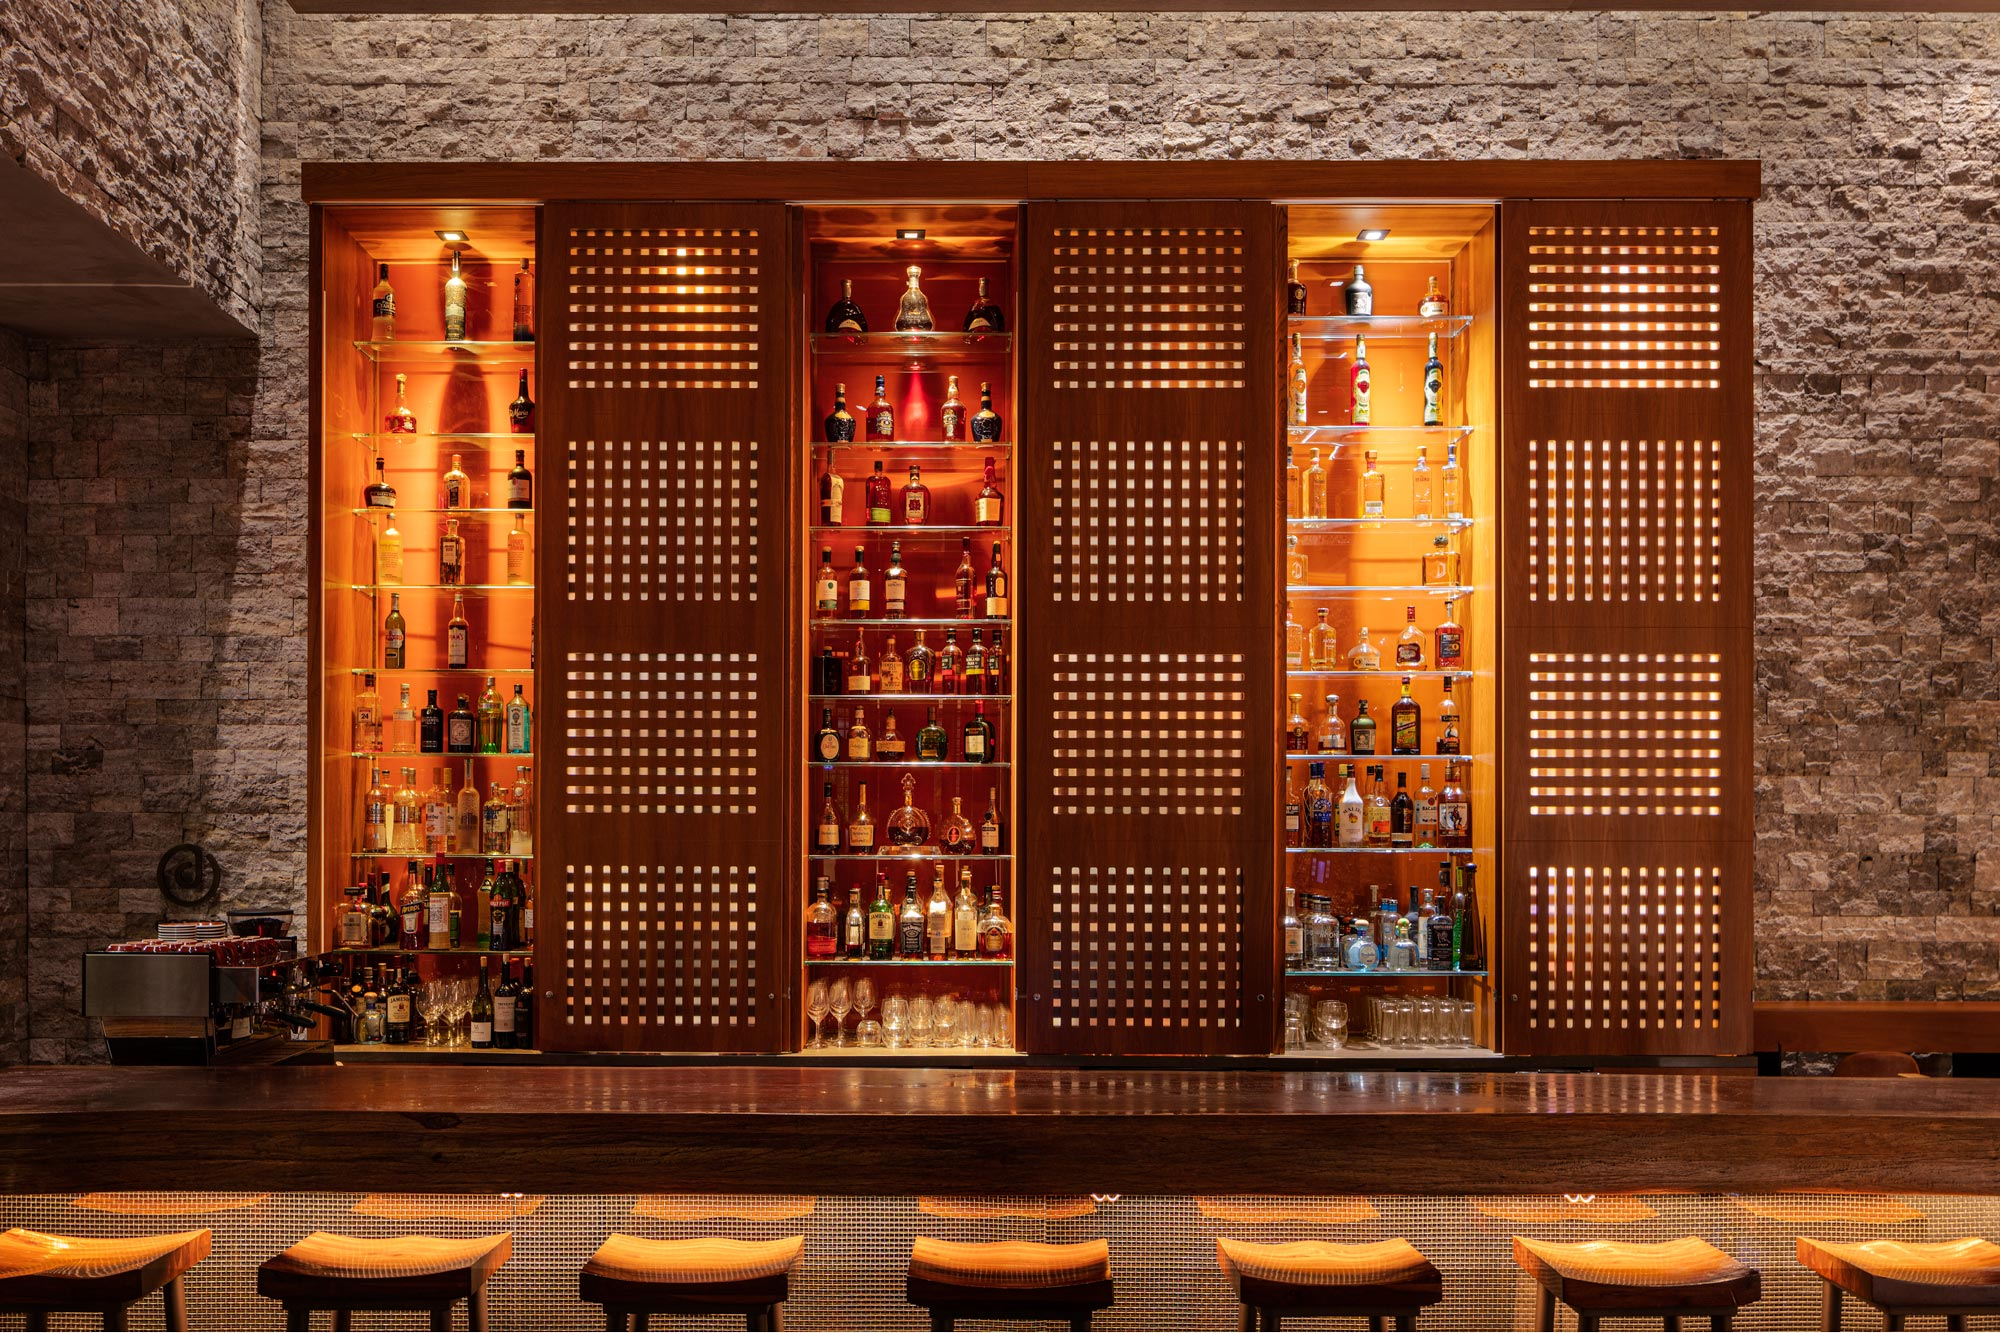 Hotel Bar Photography Miami Florida by Swiss Photographer Adrian Kilchherr, USA, Europe, Wordwide